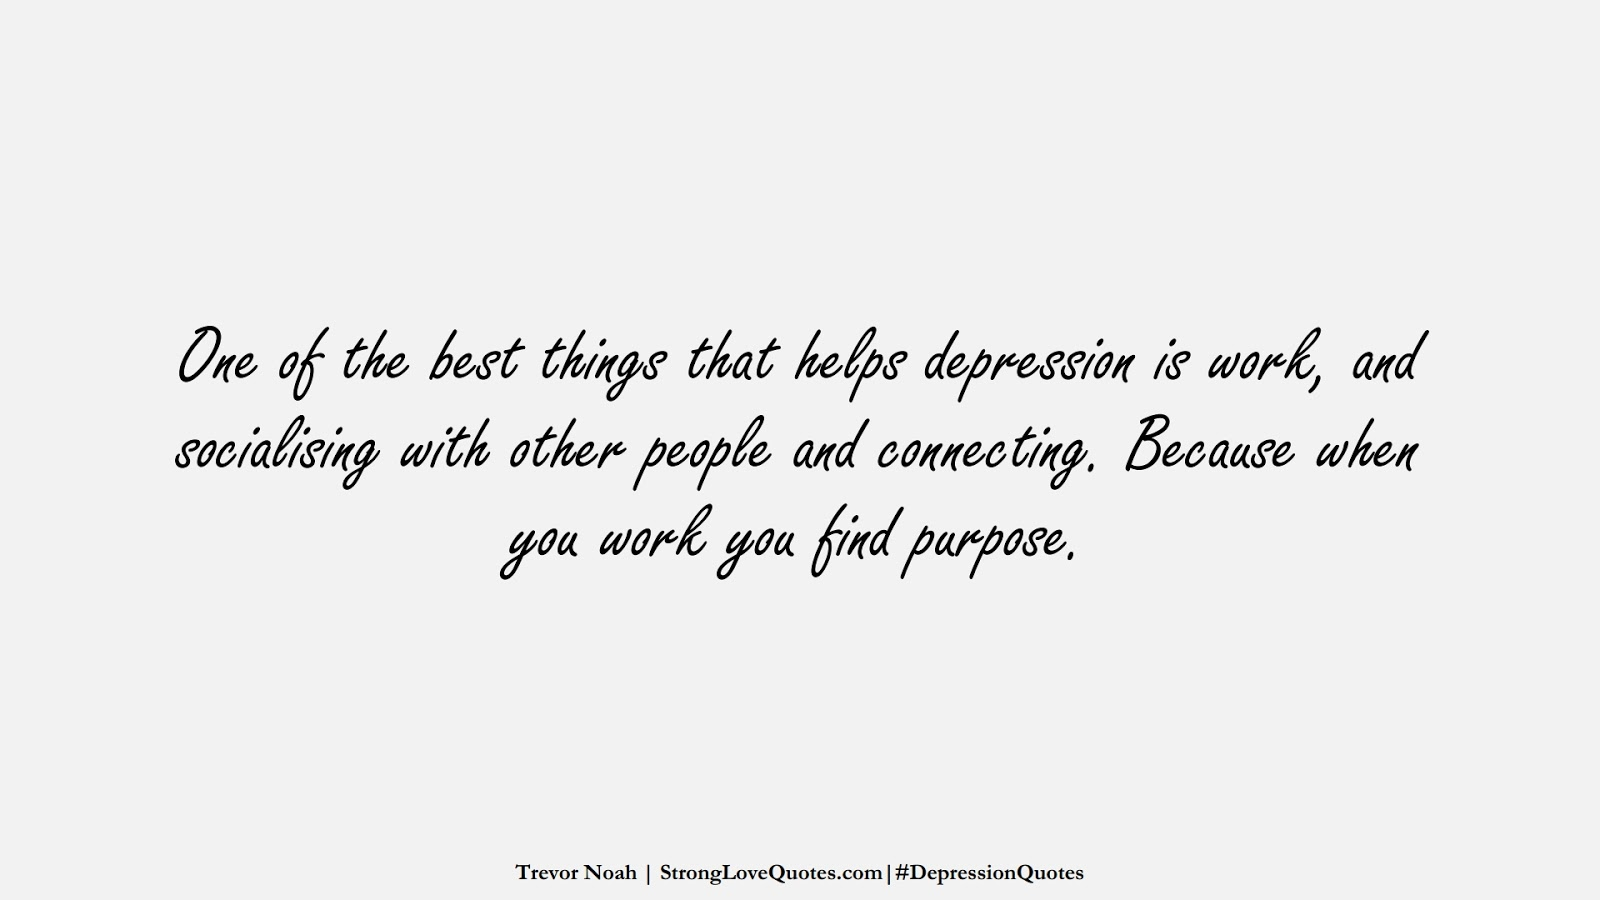 One of the best things that helps depression is work, and socialising with other people and connecting. Because when you work you find purpose. (Trevor Noah);  #DepressionQuotes